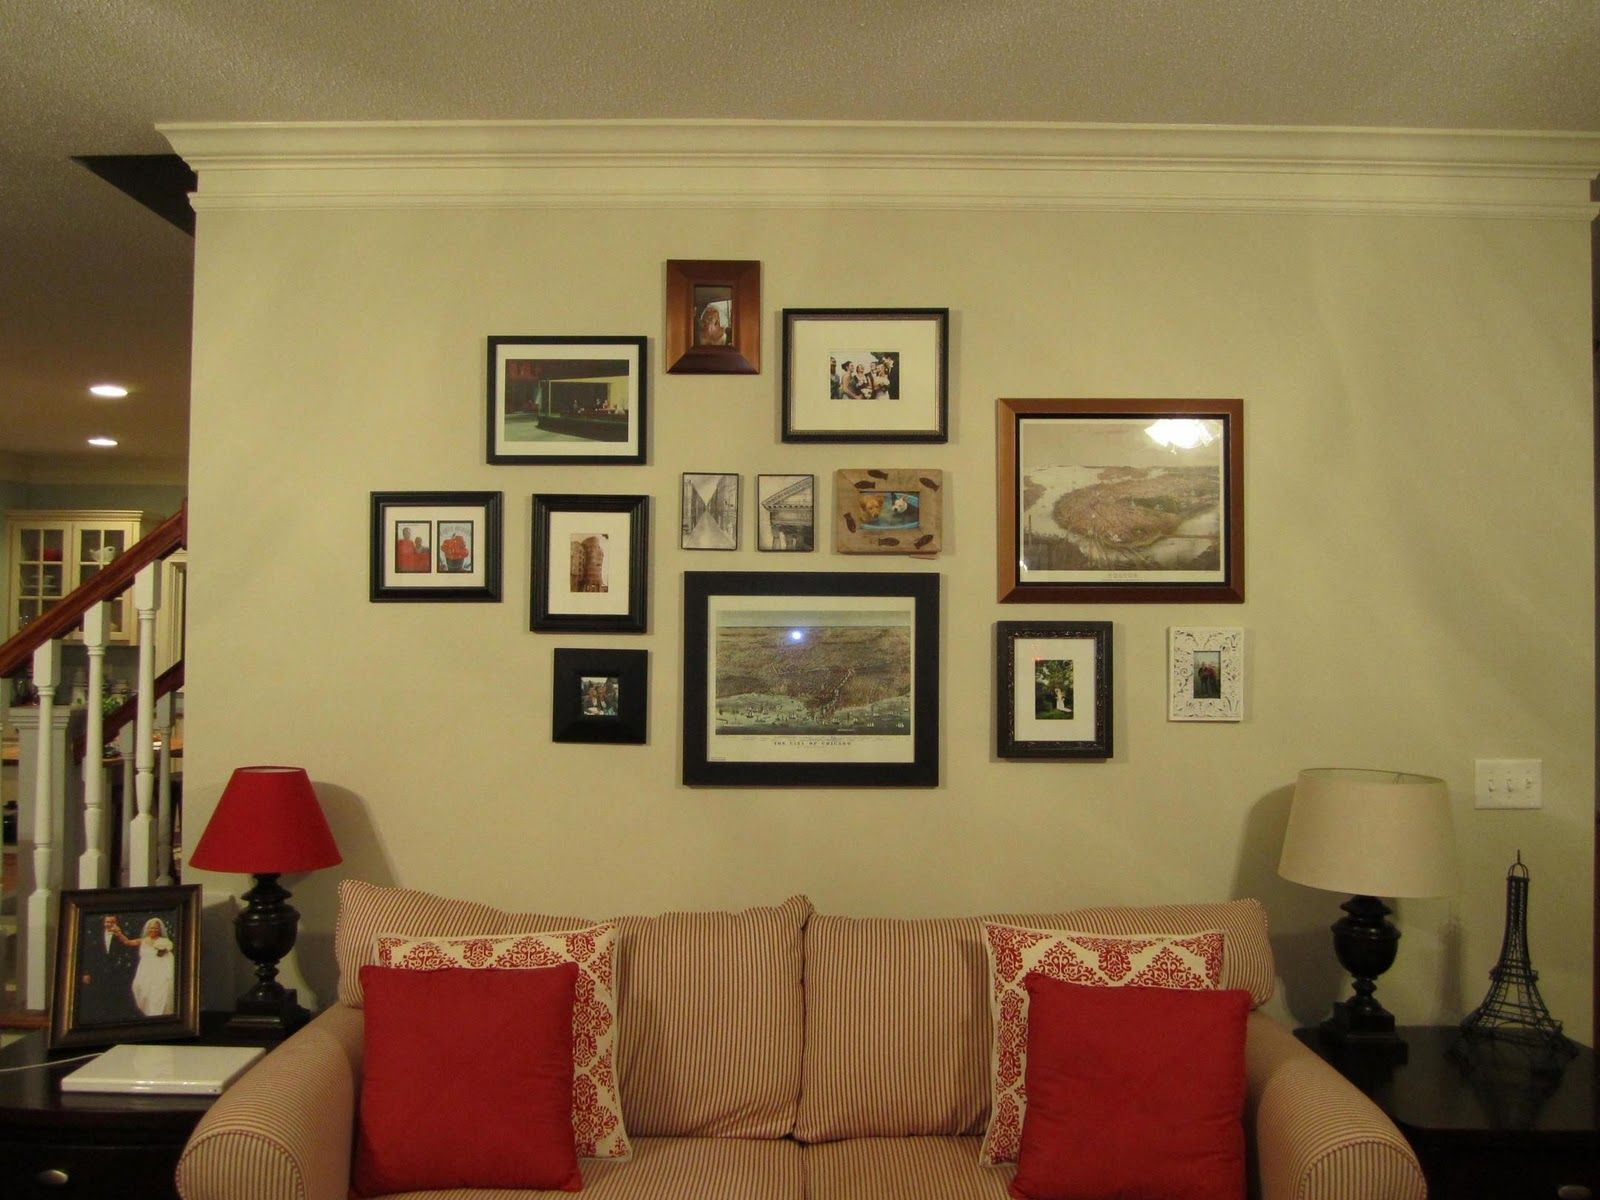 Corrin Wendell Designs Good To Know Gtk Organized Chaos Wall Frame Collage